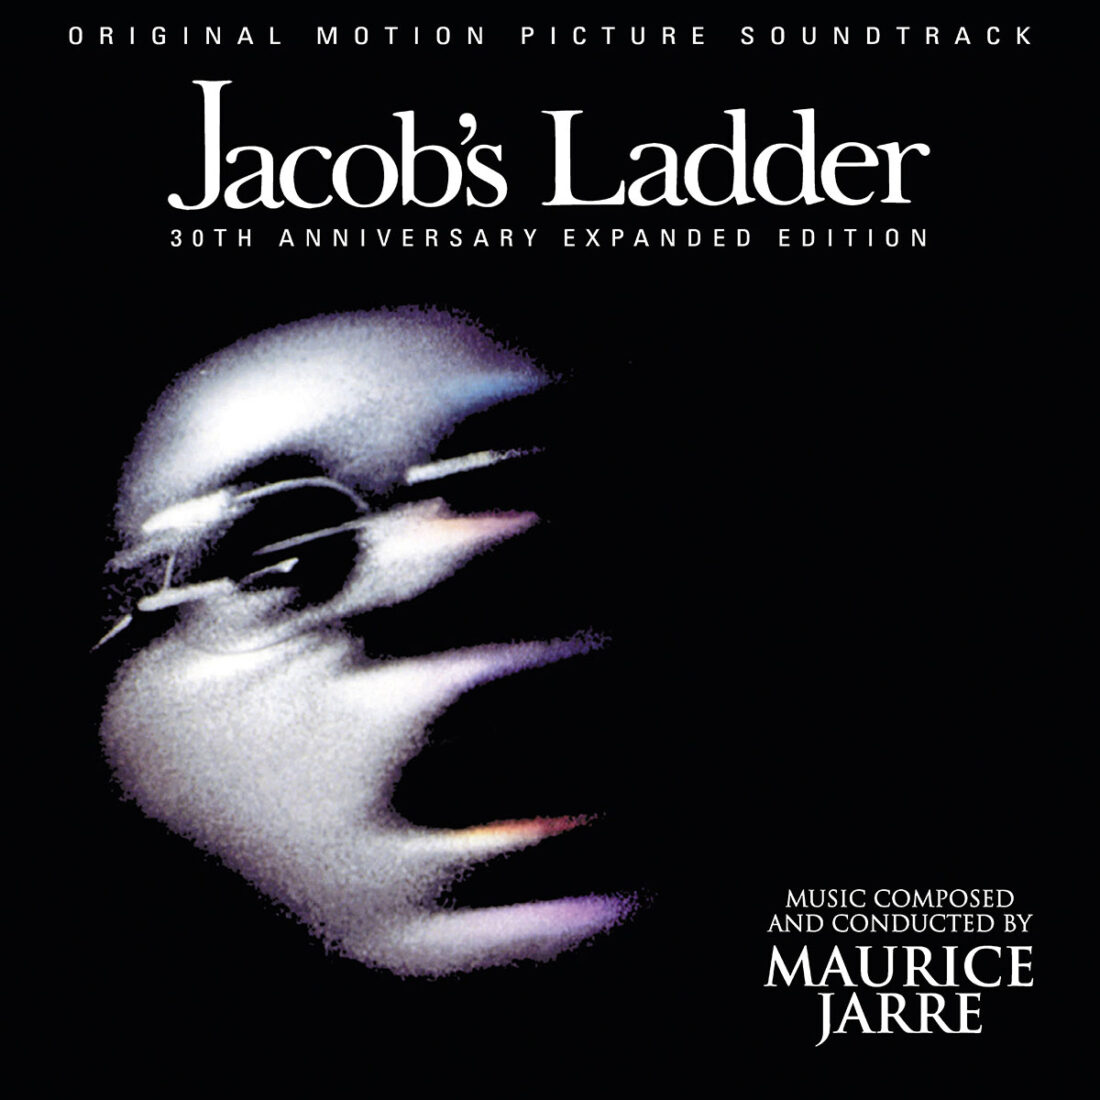 Jacob's Ladder 30th Anniversary Expanded Edition Original Soundtrack 2-CD Set by Maurice Jarre